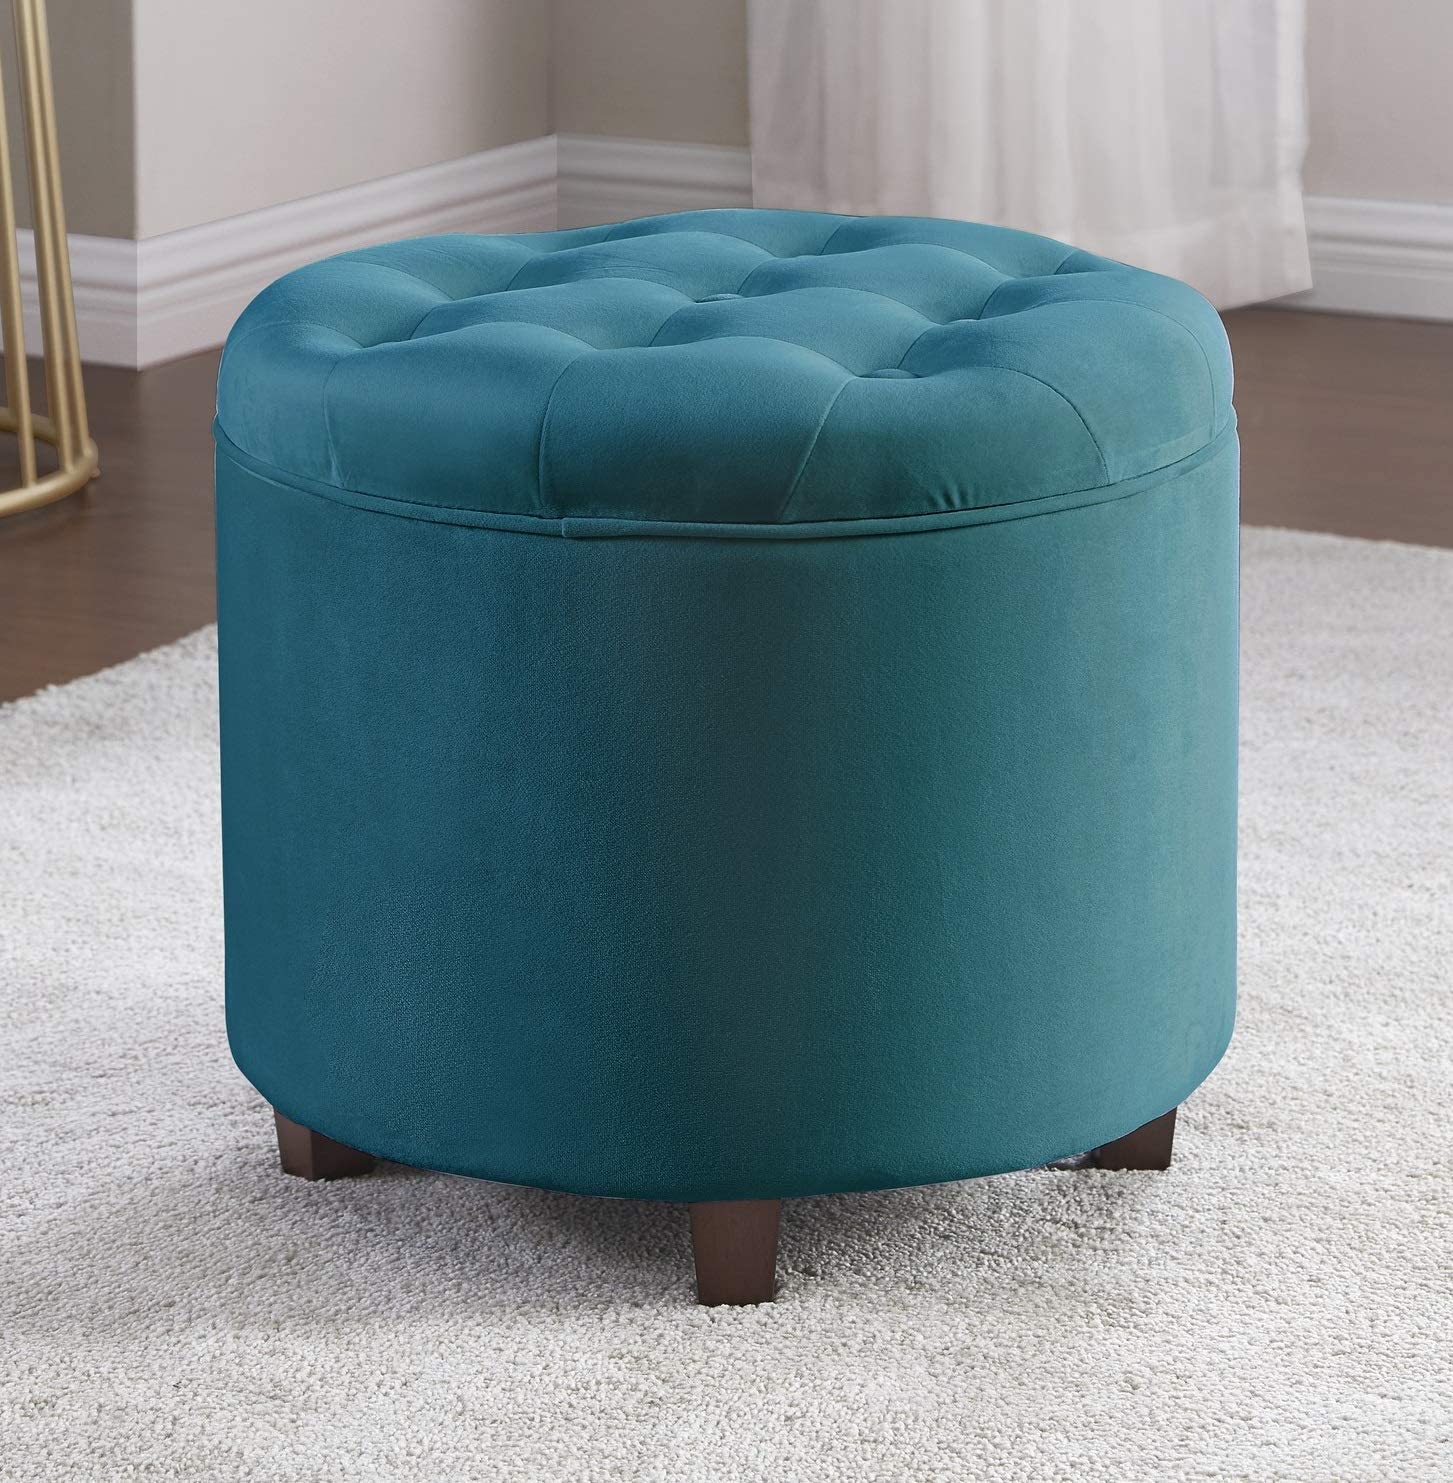 Ornavo Home Donovan Round Tufted Velvet Storage Ottoman Foot Rest Stool/Seat